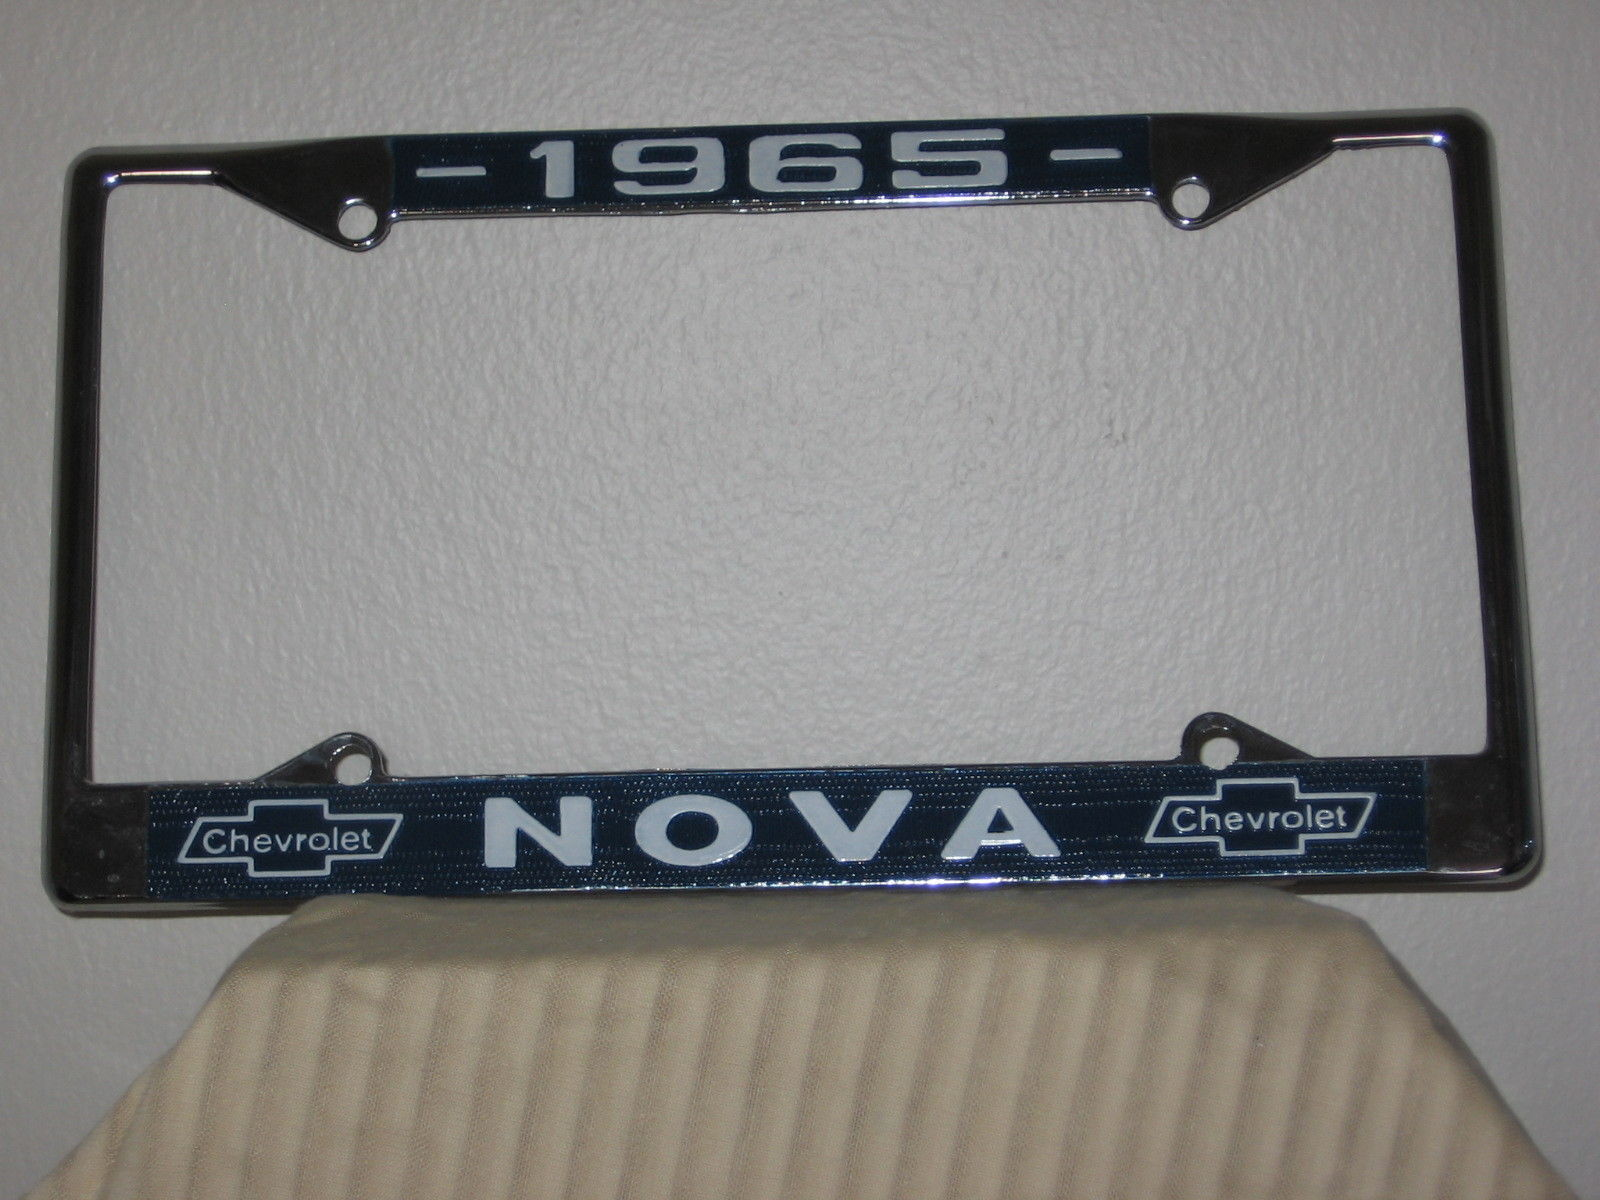 1965 Chevy Nova Chrome License Plate Frame with Chevrolet Bowtie